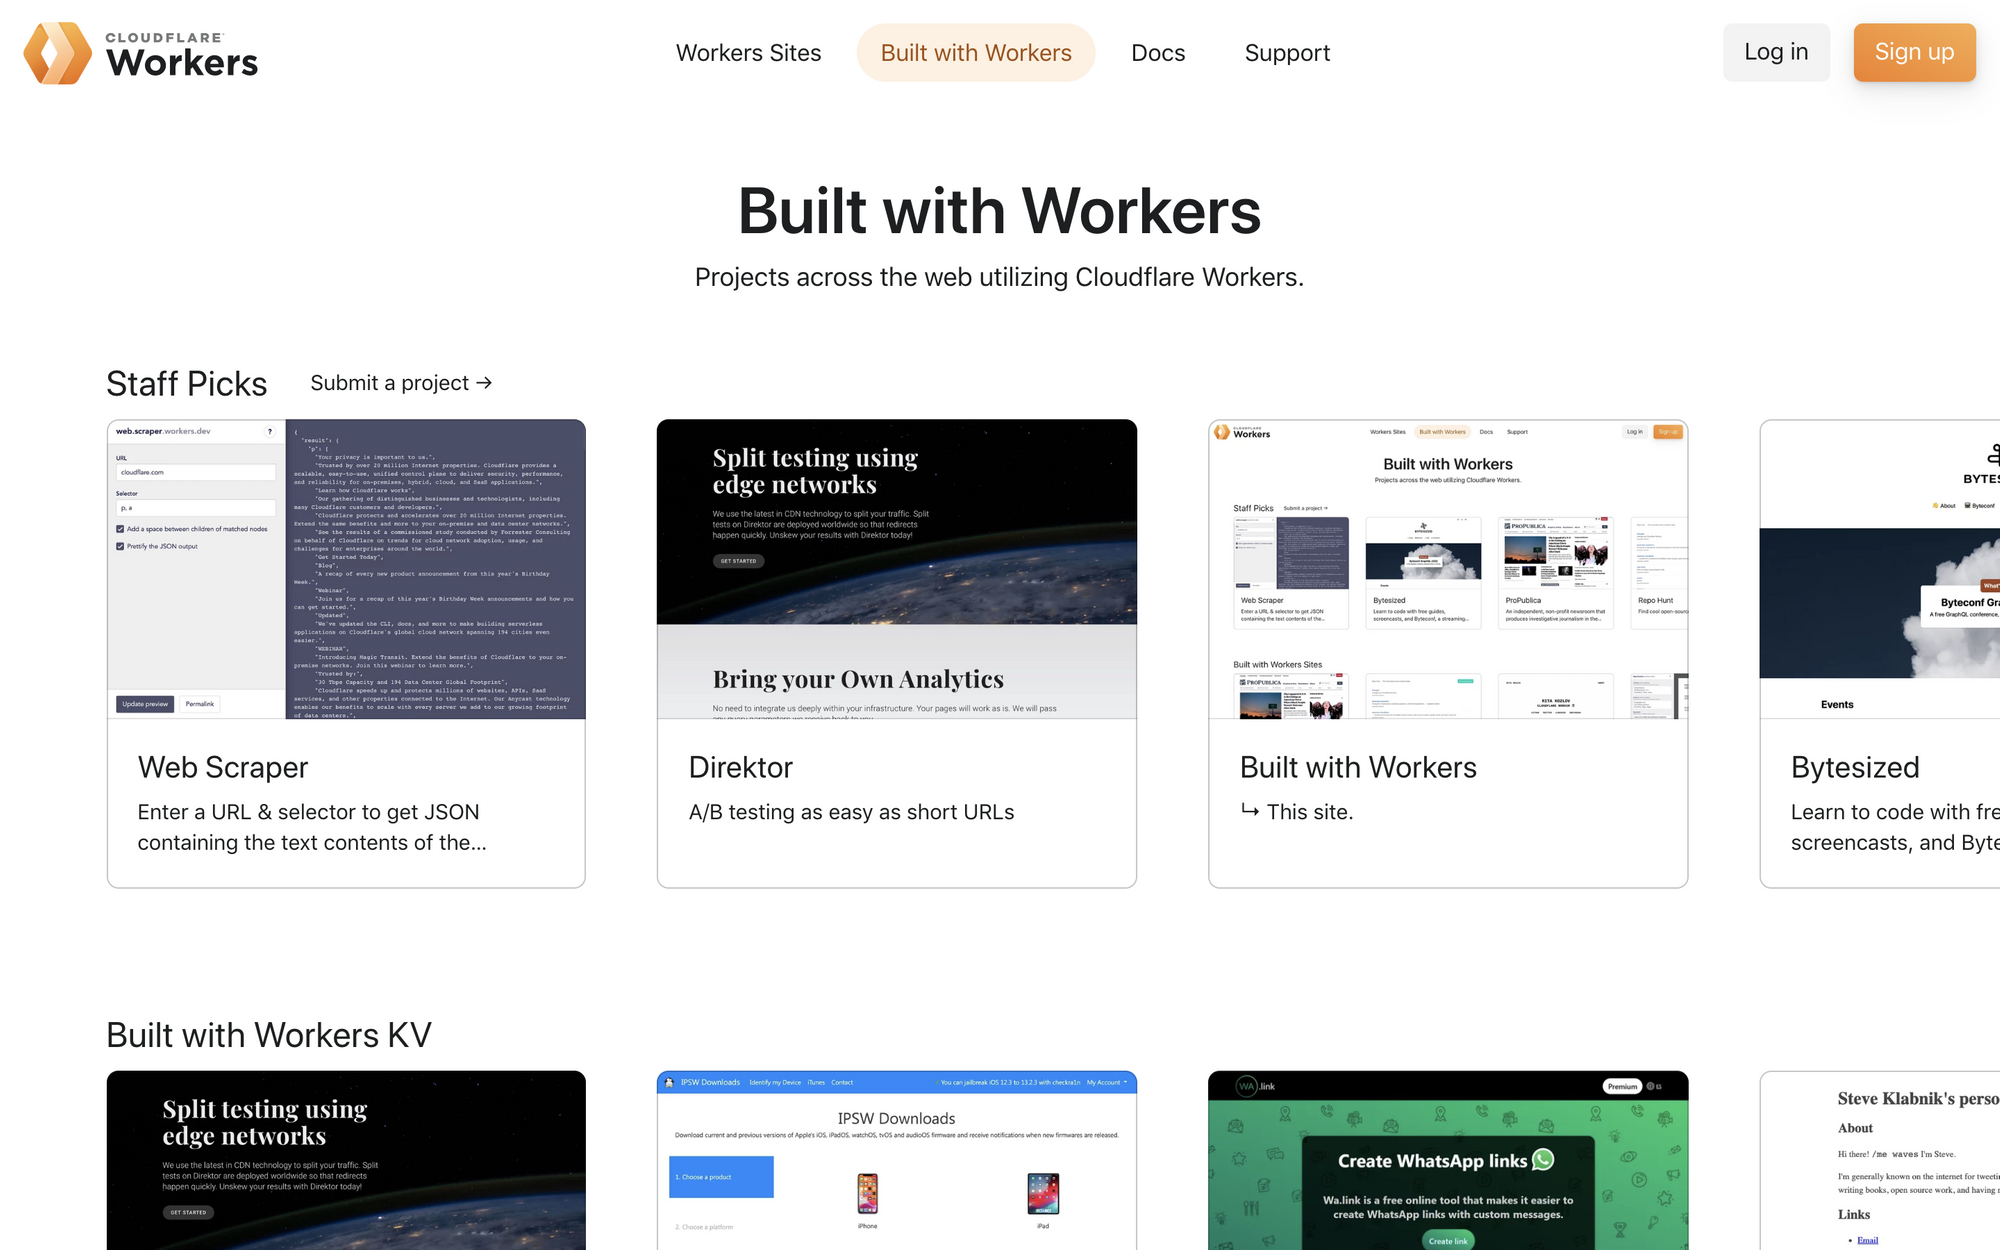 Announcing Built with Workers